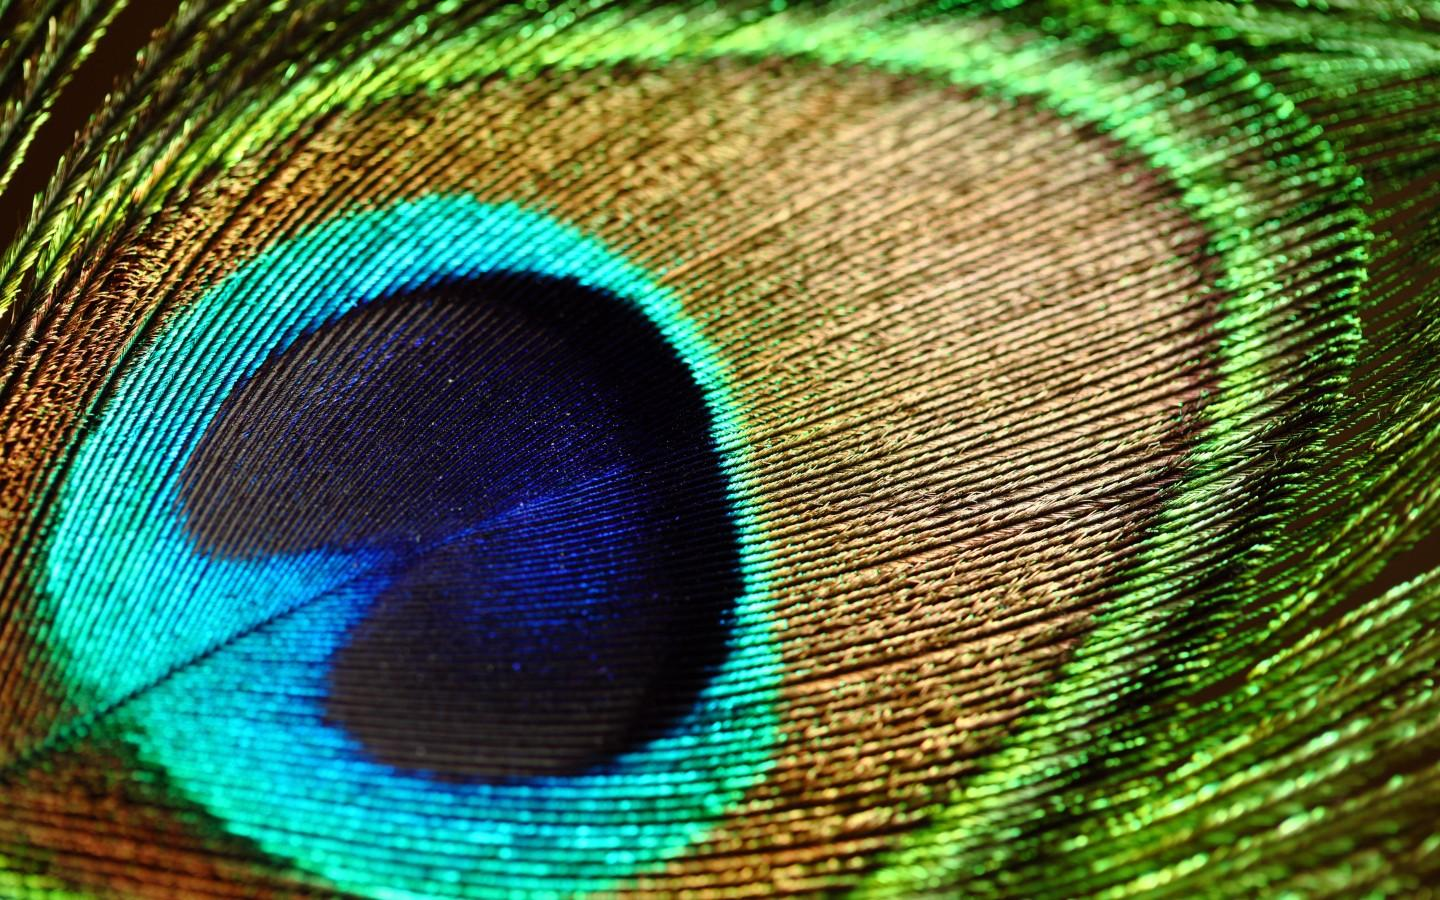 Peacock feather HQ Wallpaper